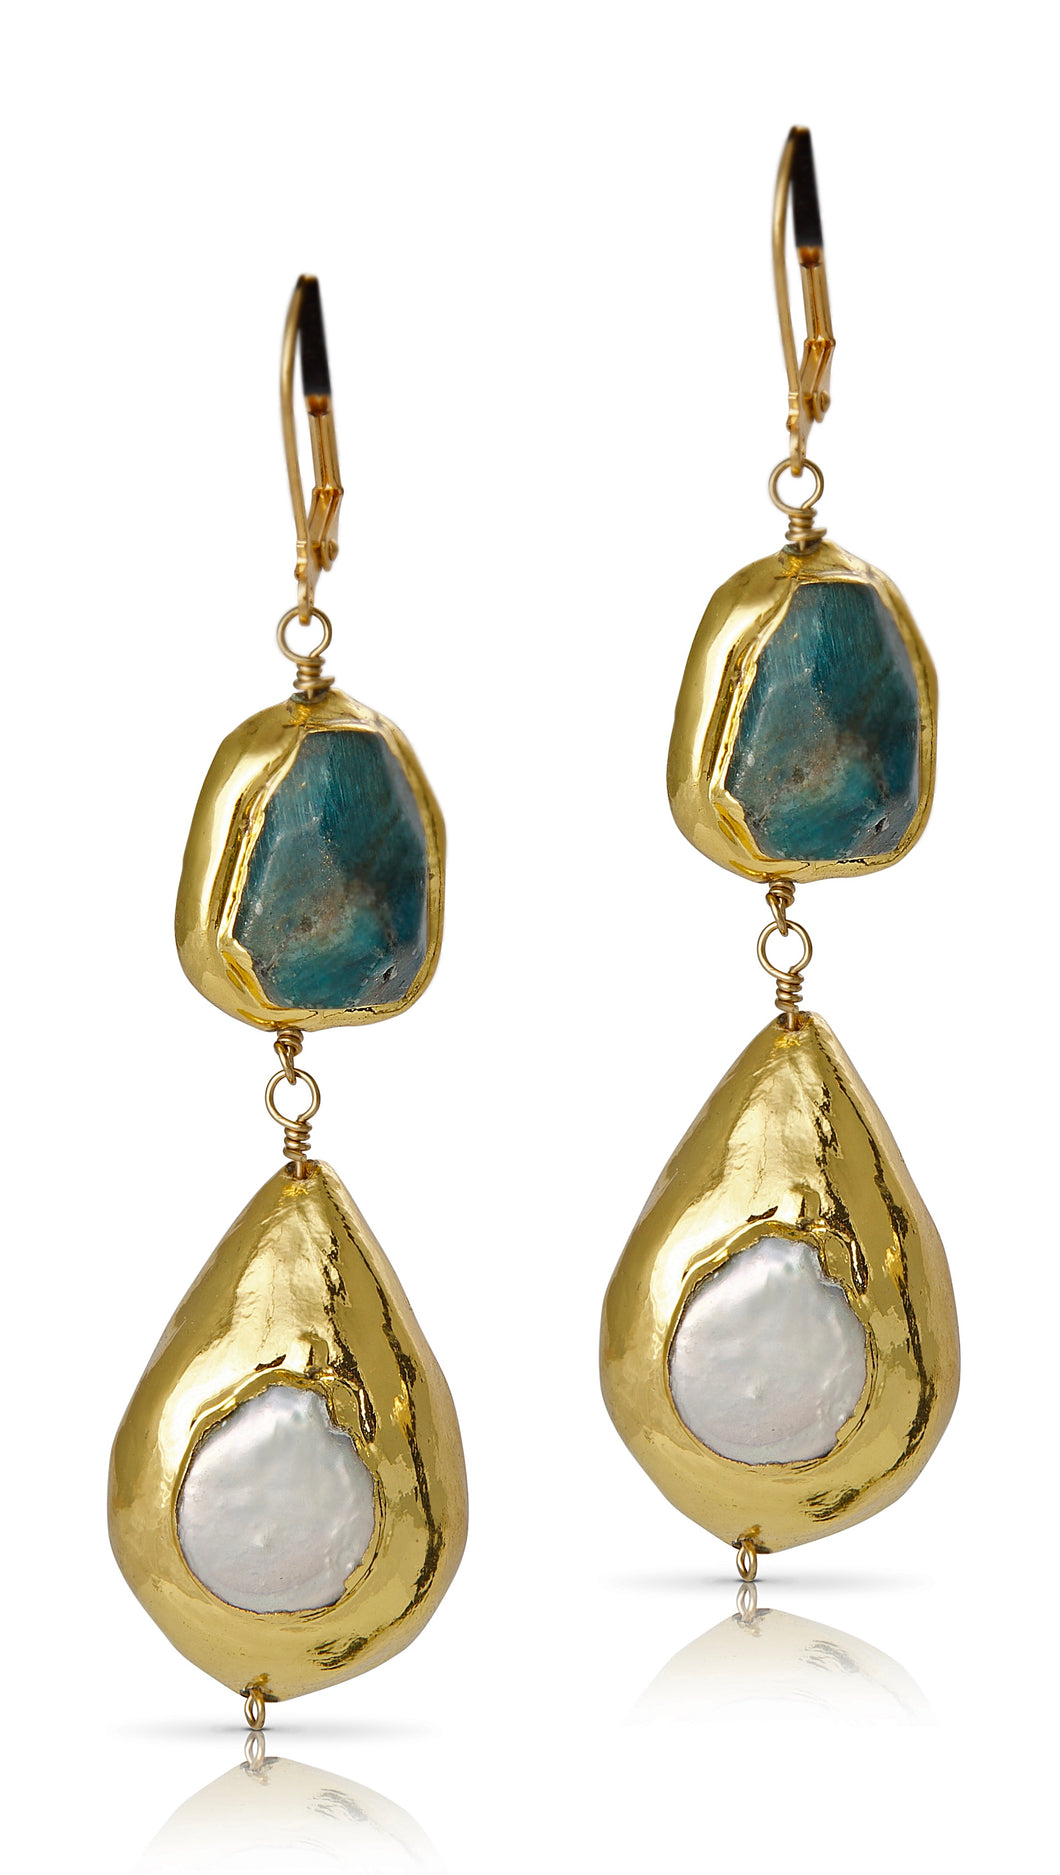 Ruth Apatite and Pearl Earrings